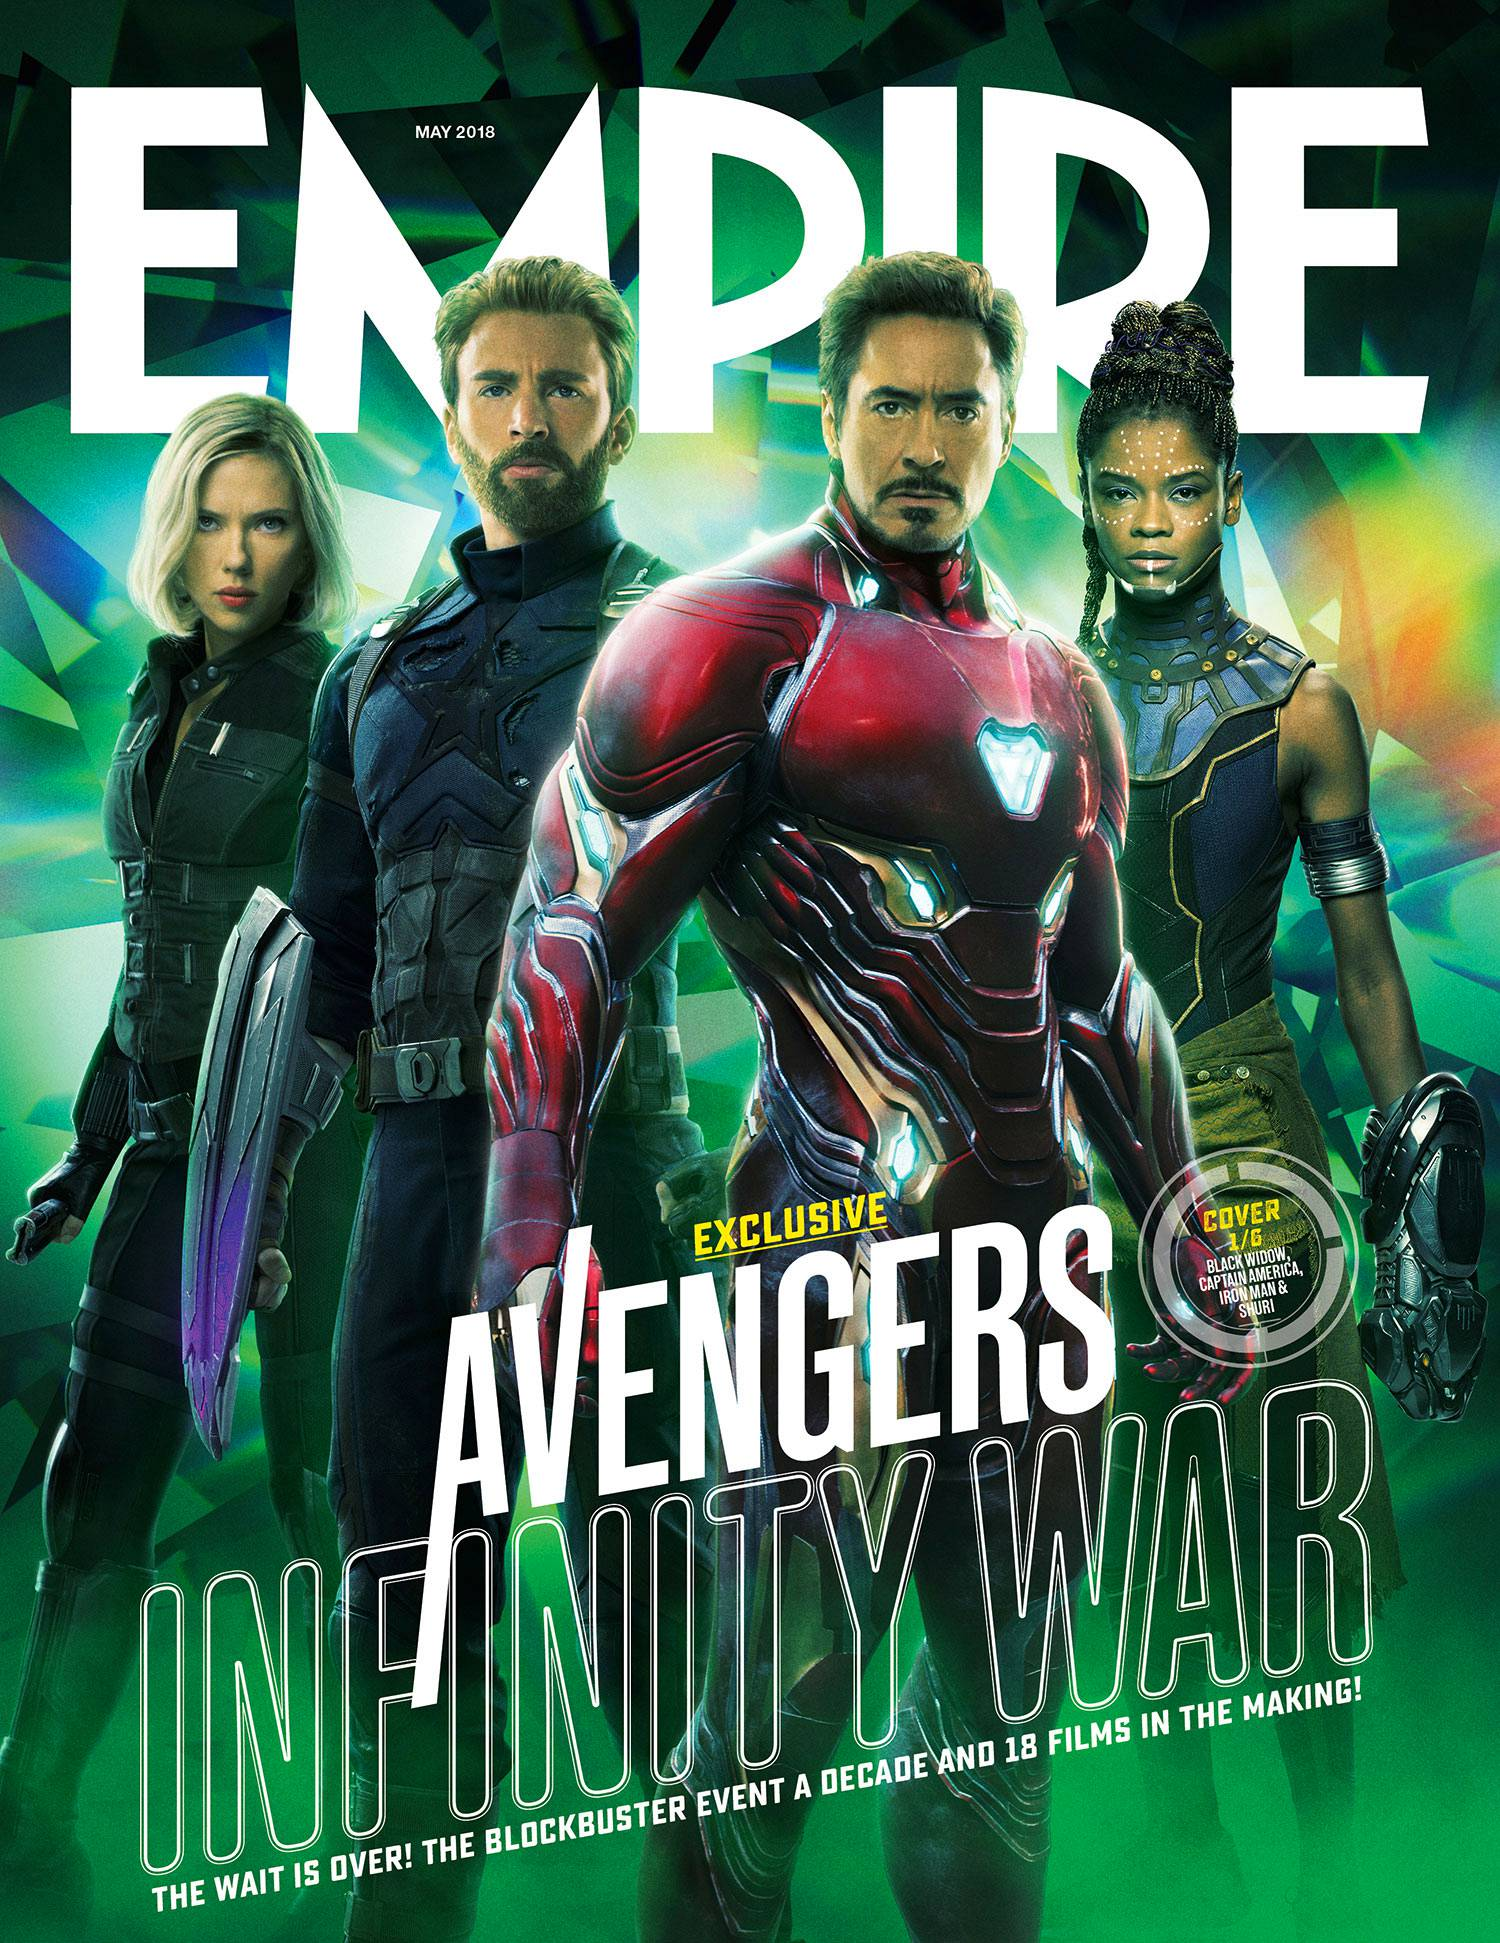 Empire Magazine Avengers: Infinity War